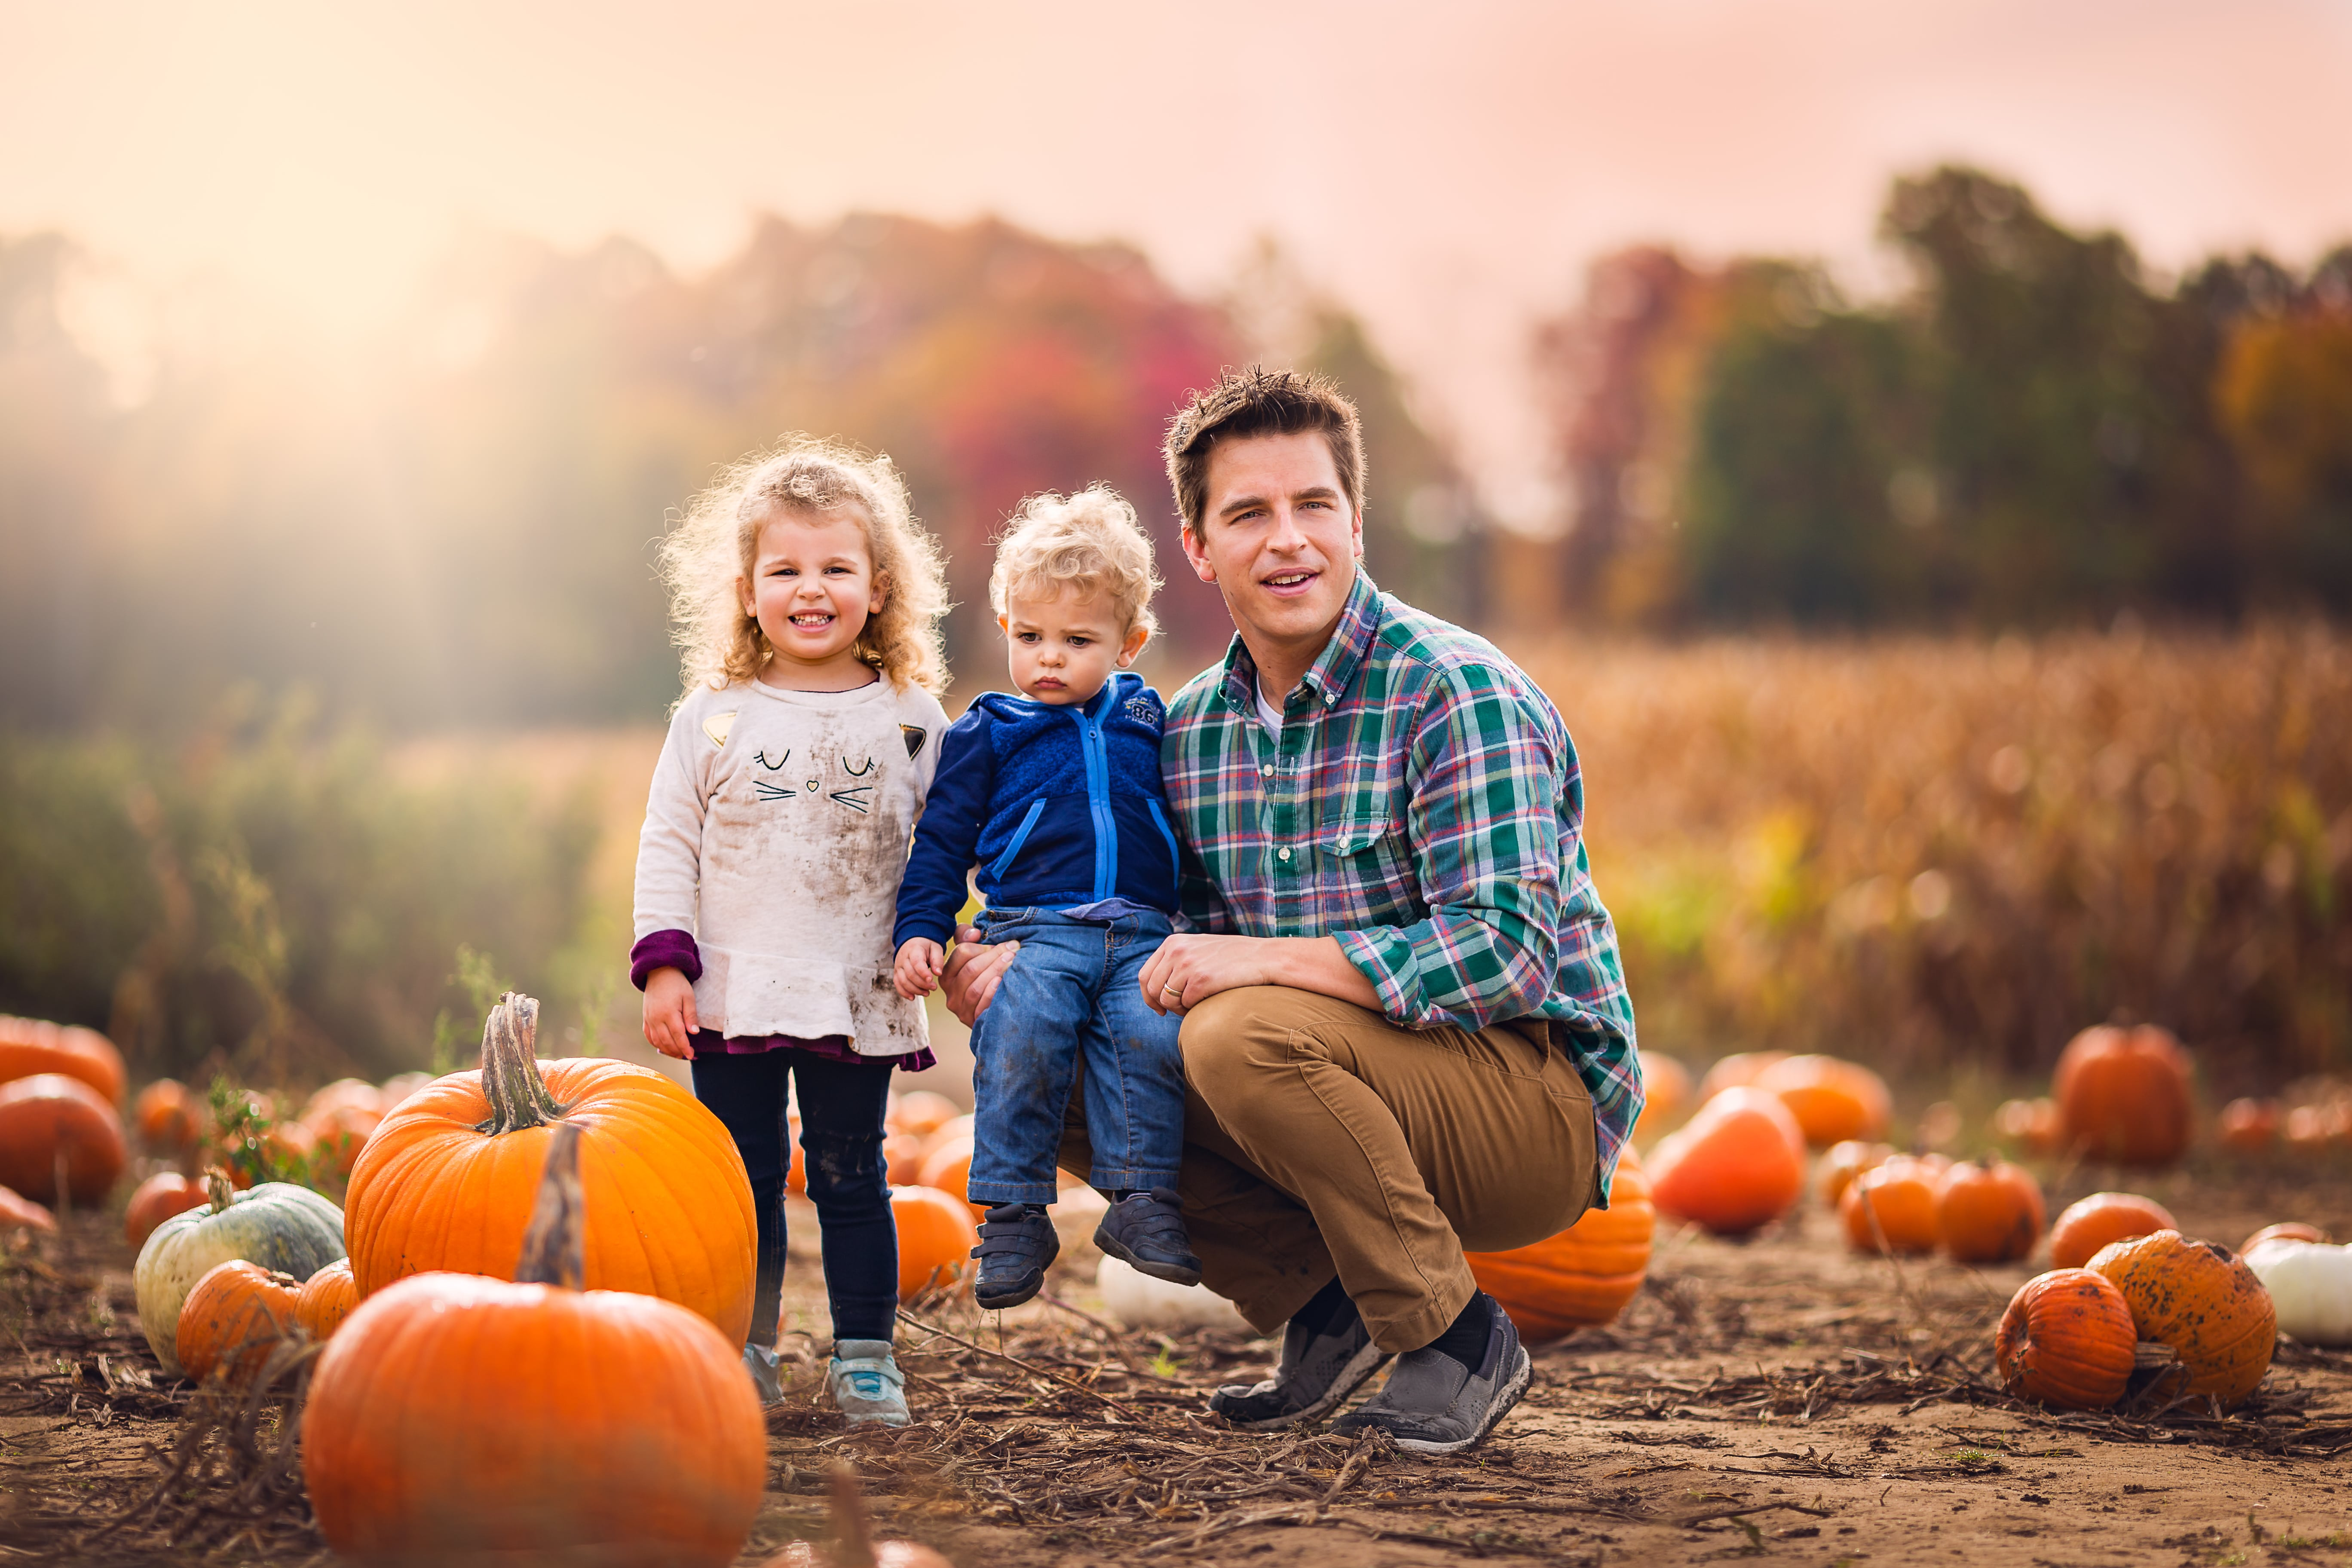 father and two children in a pumpkin patch